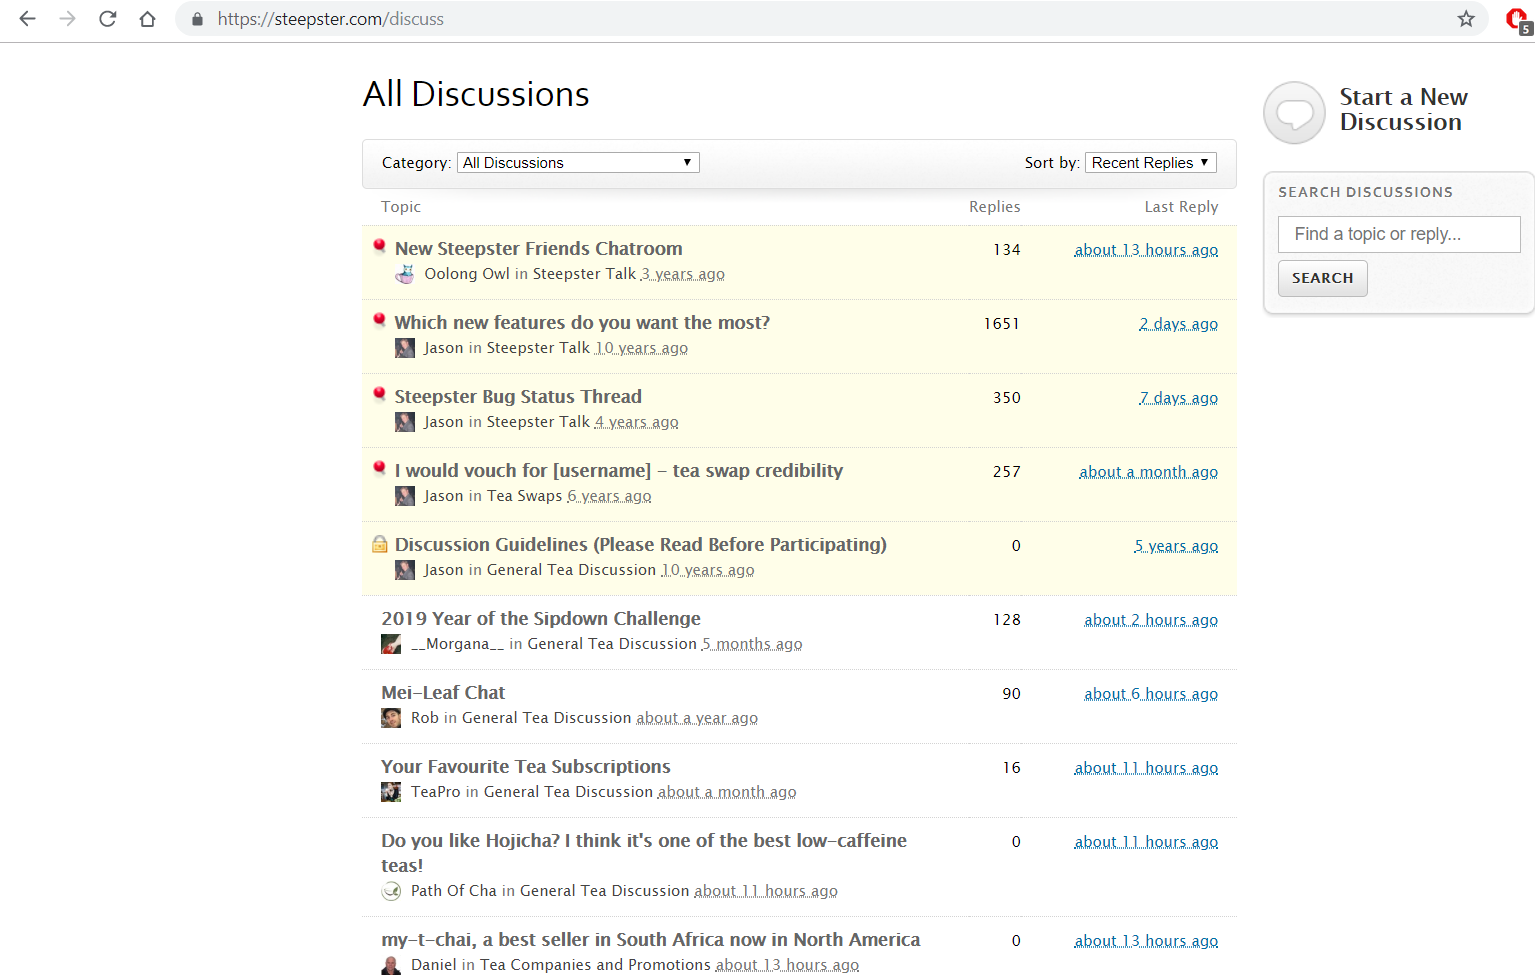 An active and spam free capture of the discussion board on Steepster. Taken 5.28.19